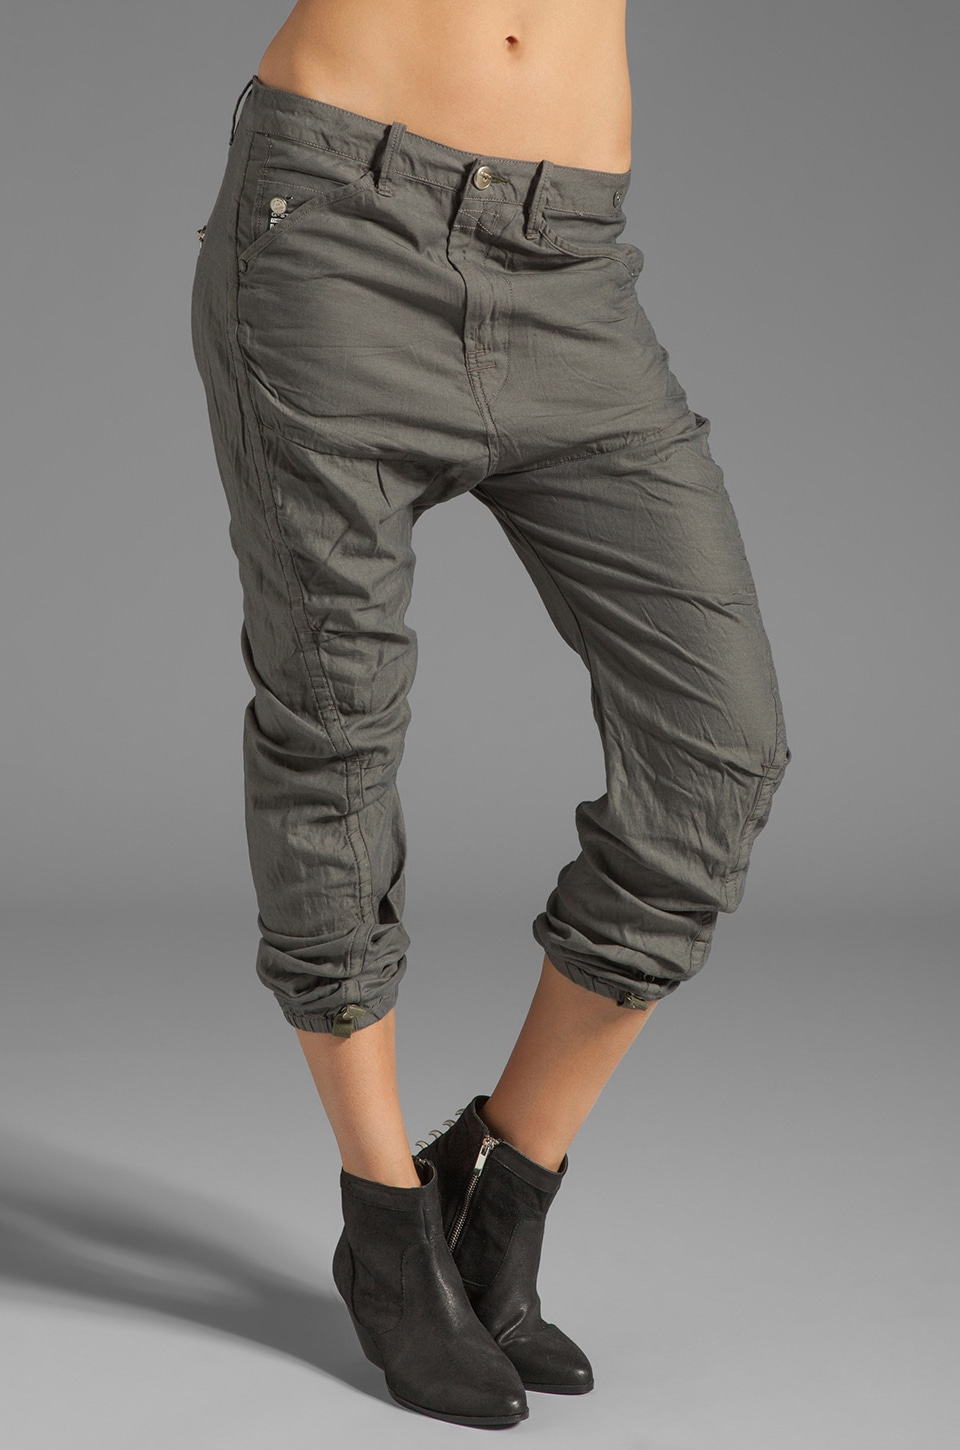 G-Star Trooper X-Loose Tapered Pant in Sage